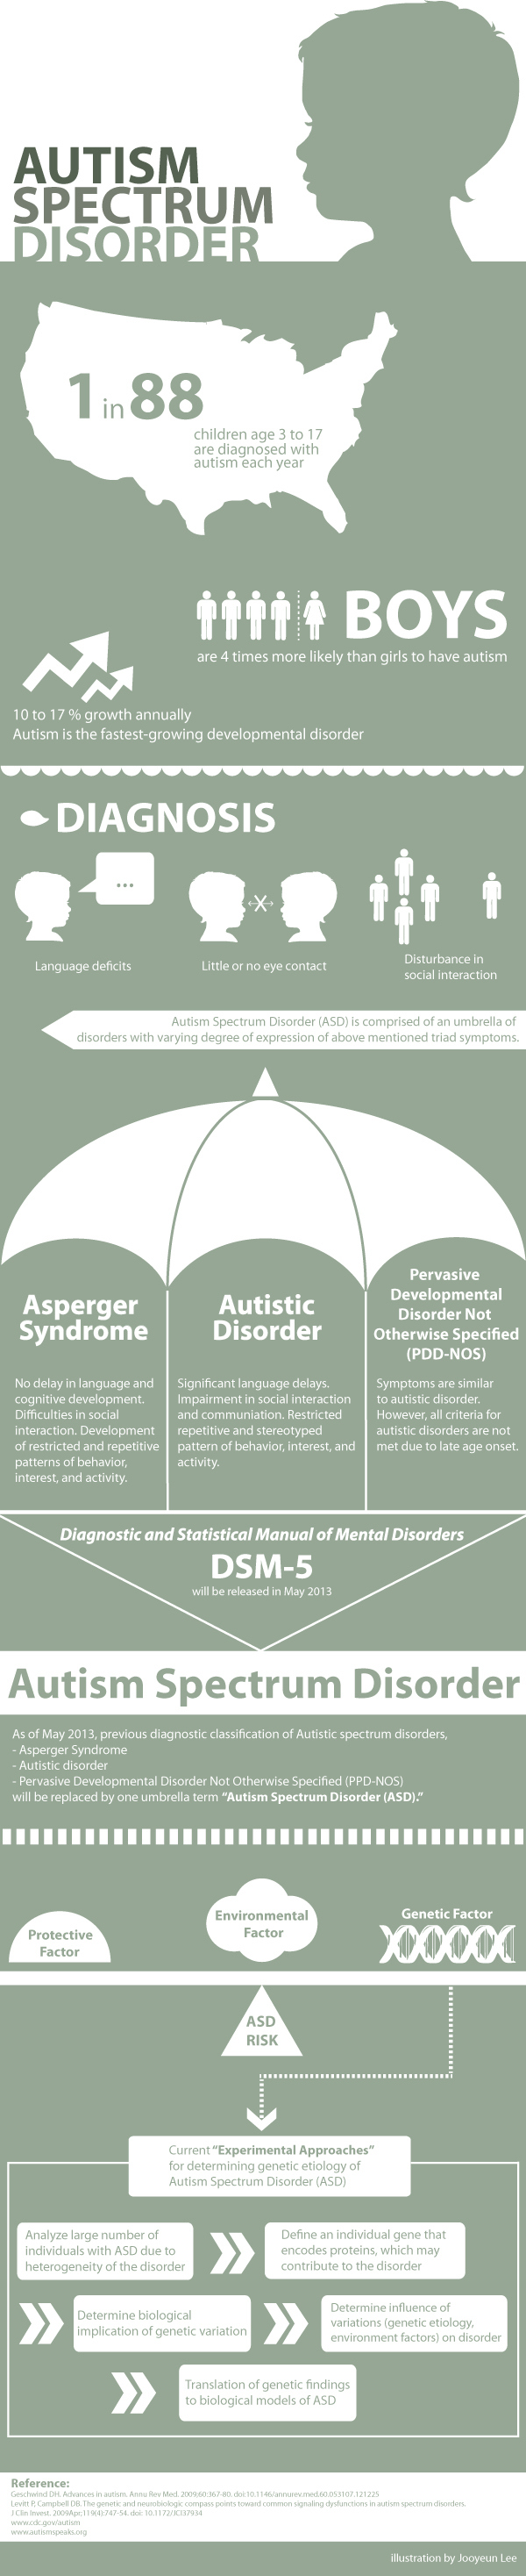 Autism Spectrum Disorder: An Infographic | Knowing Neurons